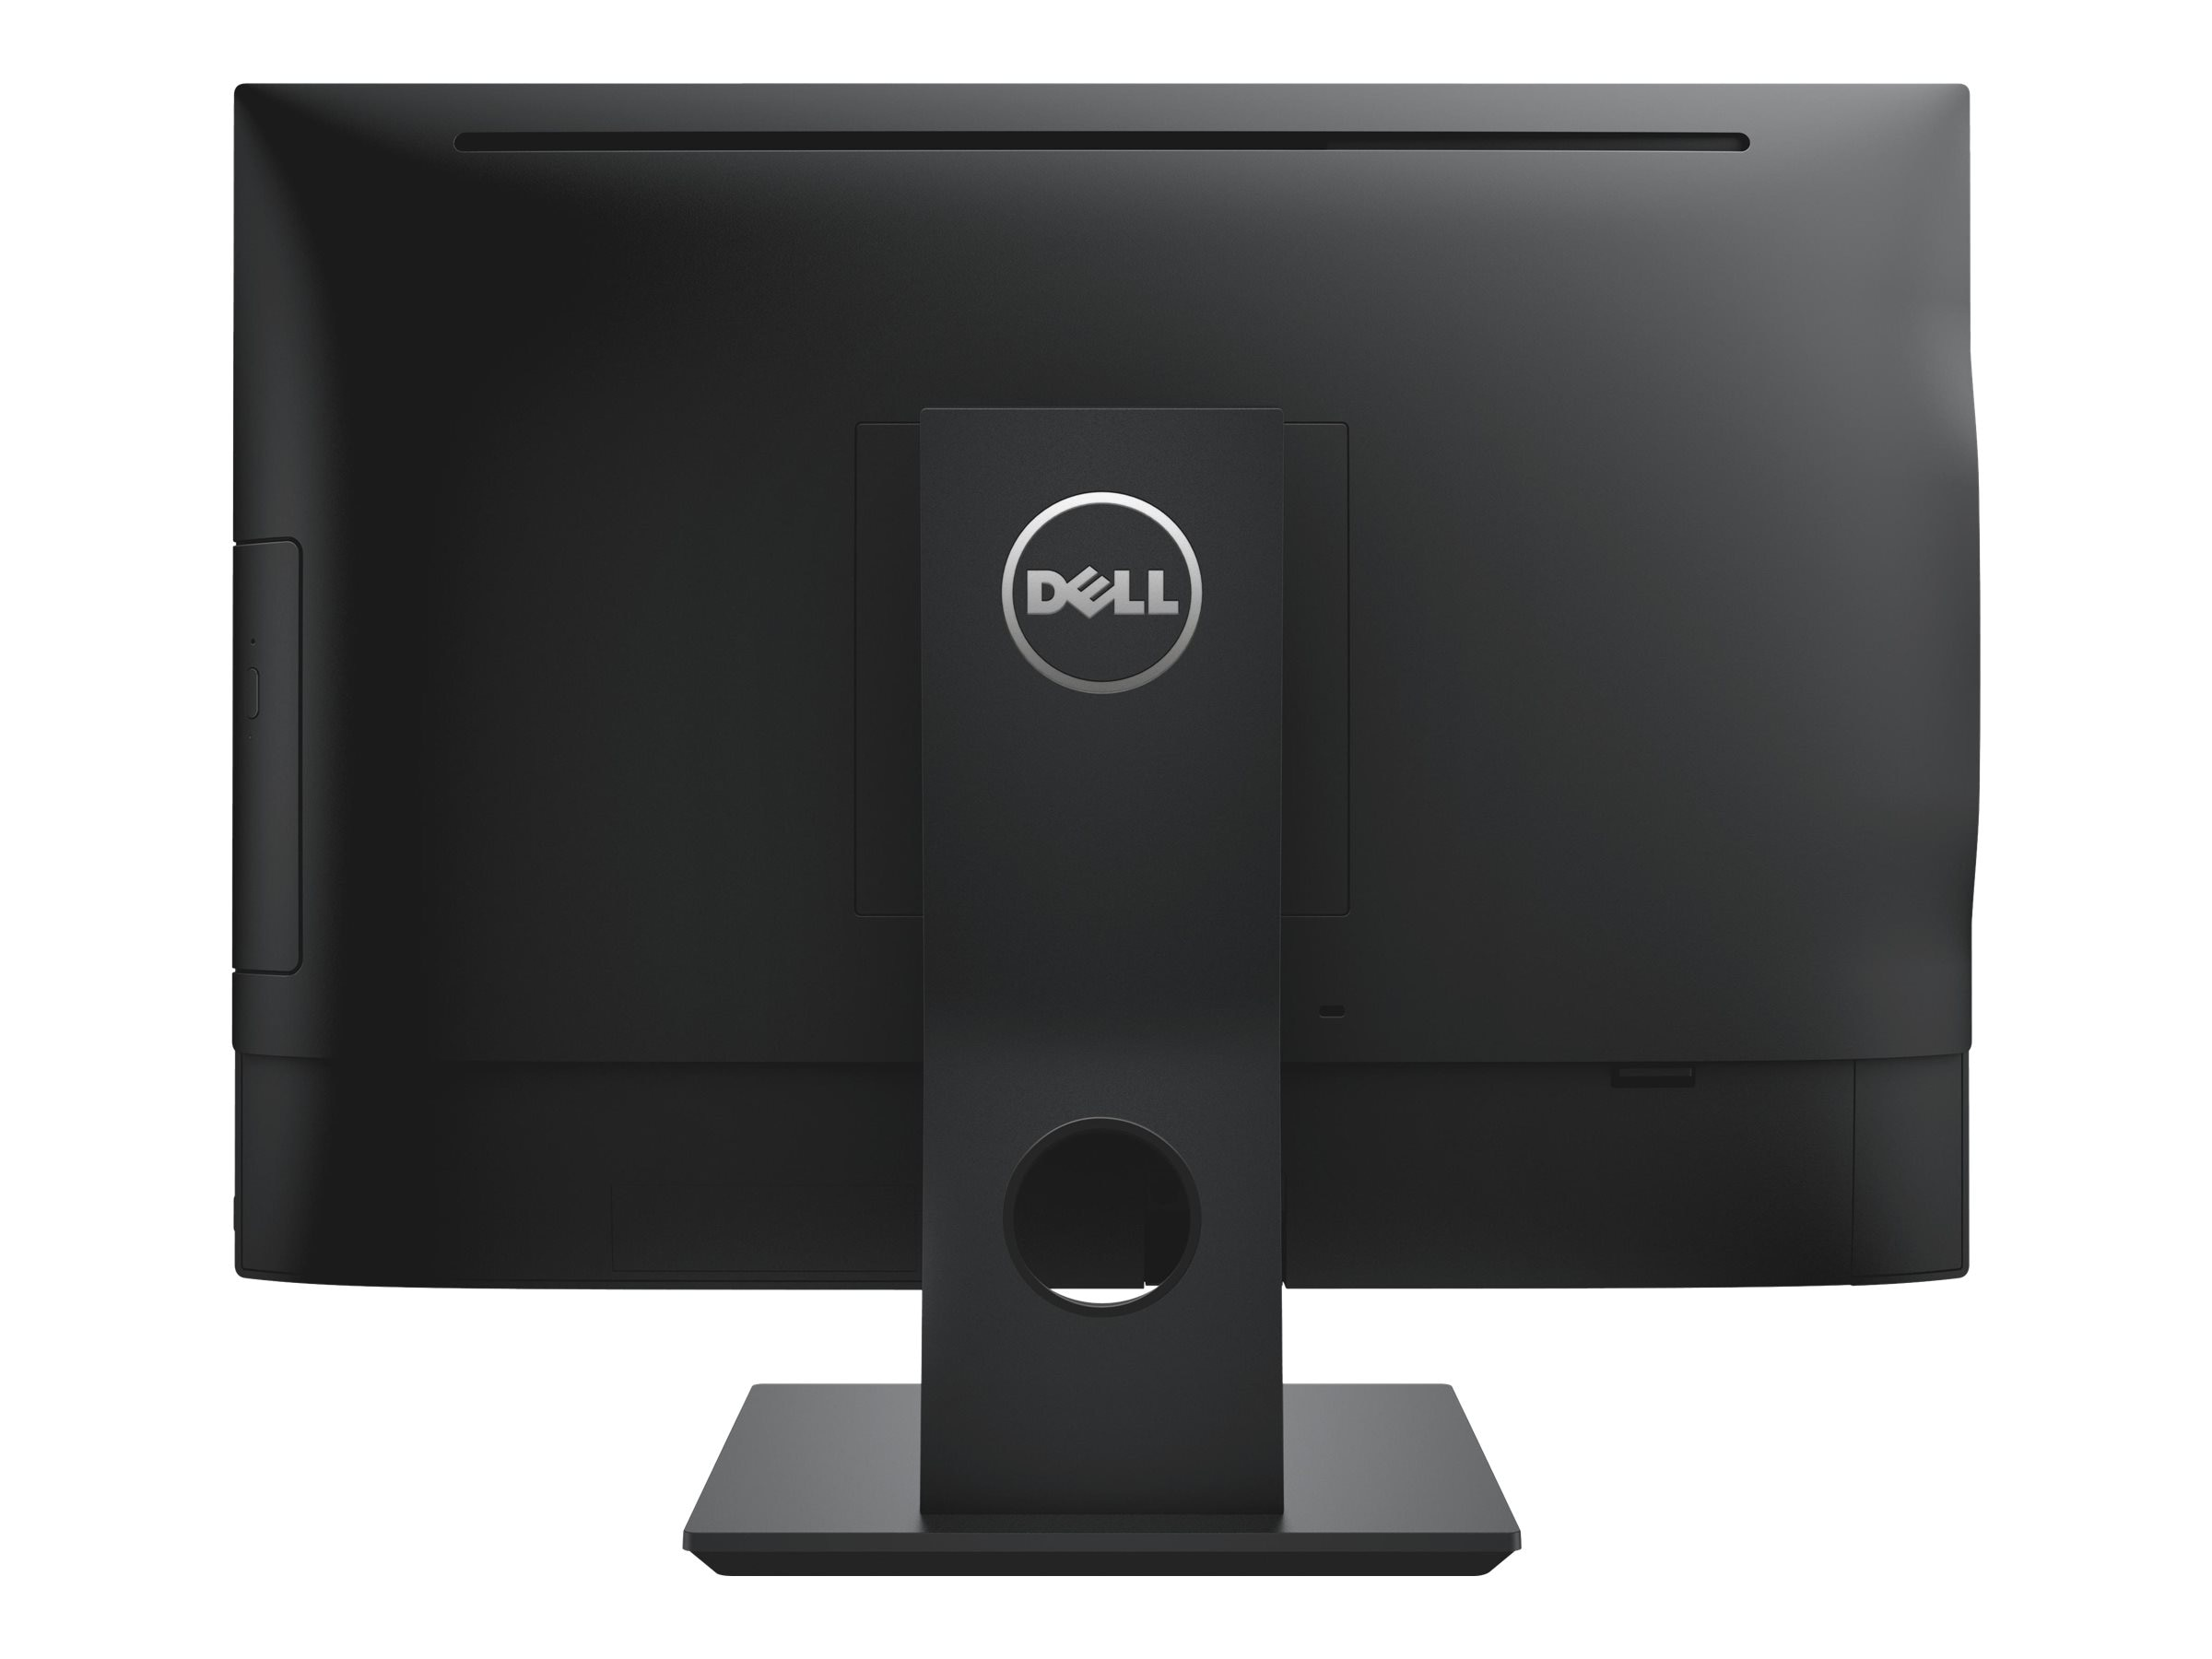 Dell OptiPlex 3240 AIO Core i5-6500 3.2GHz 4GB 500GB DVD+RW GbE ac BT WC 21.5 FHD W7P64-W10P, 1D2H7